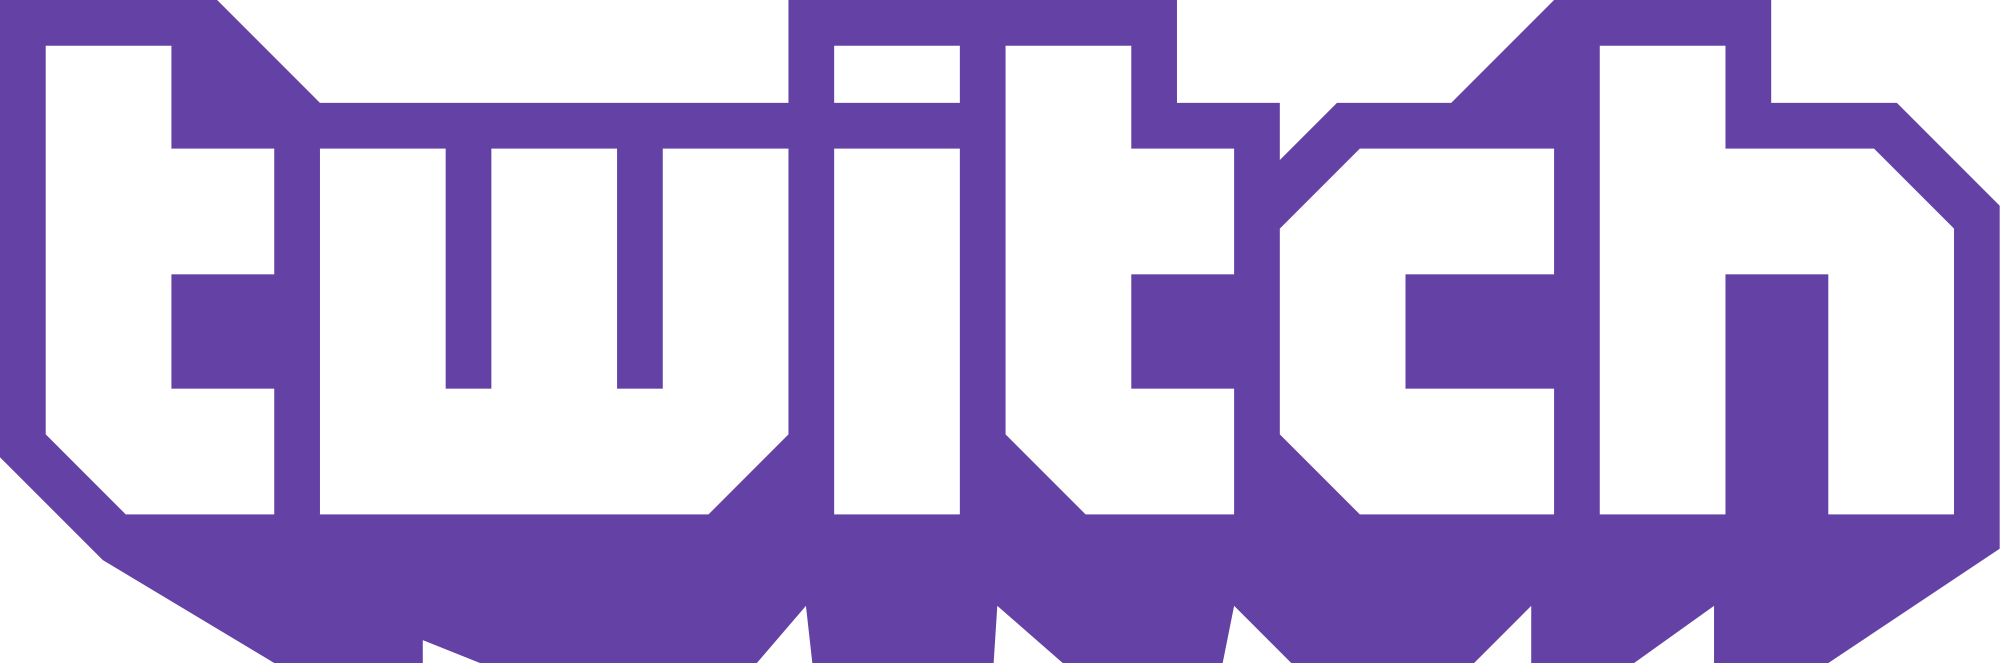 Twitch logo png. File wordmark only svg